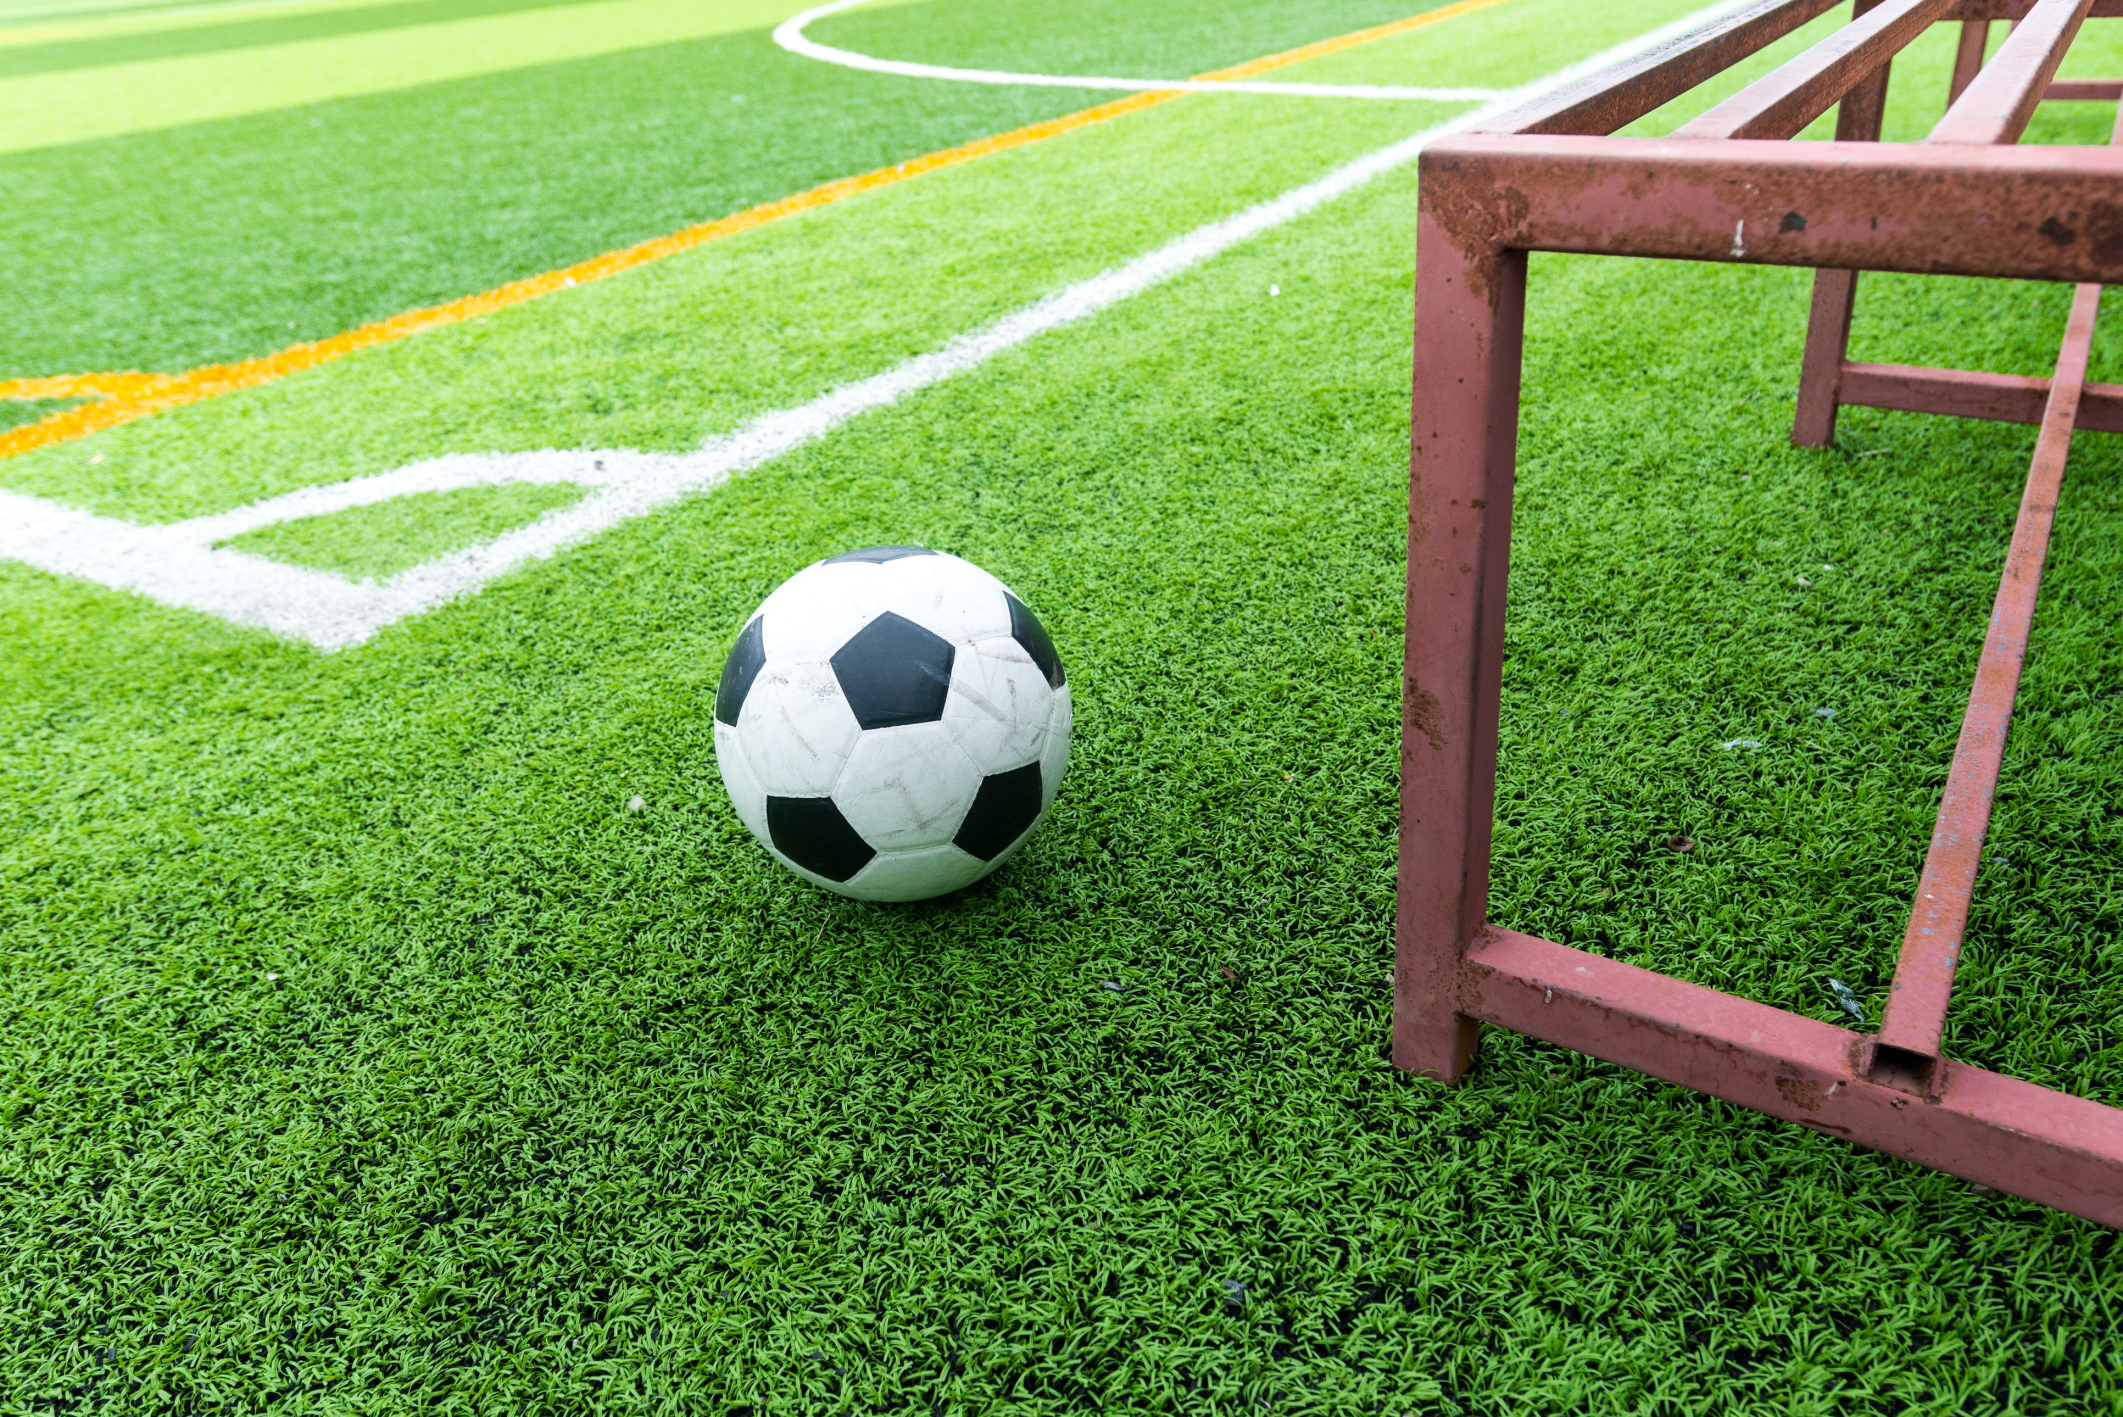 Artificial turf pros and cons - Artificial Turf Pros And Cons 20